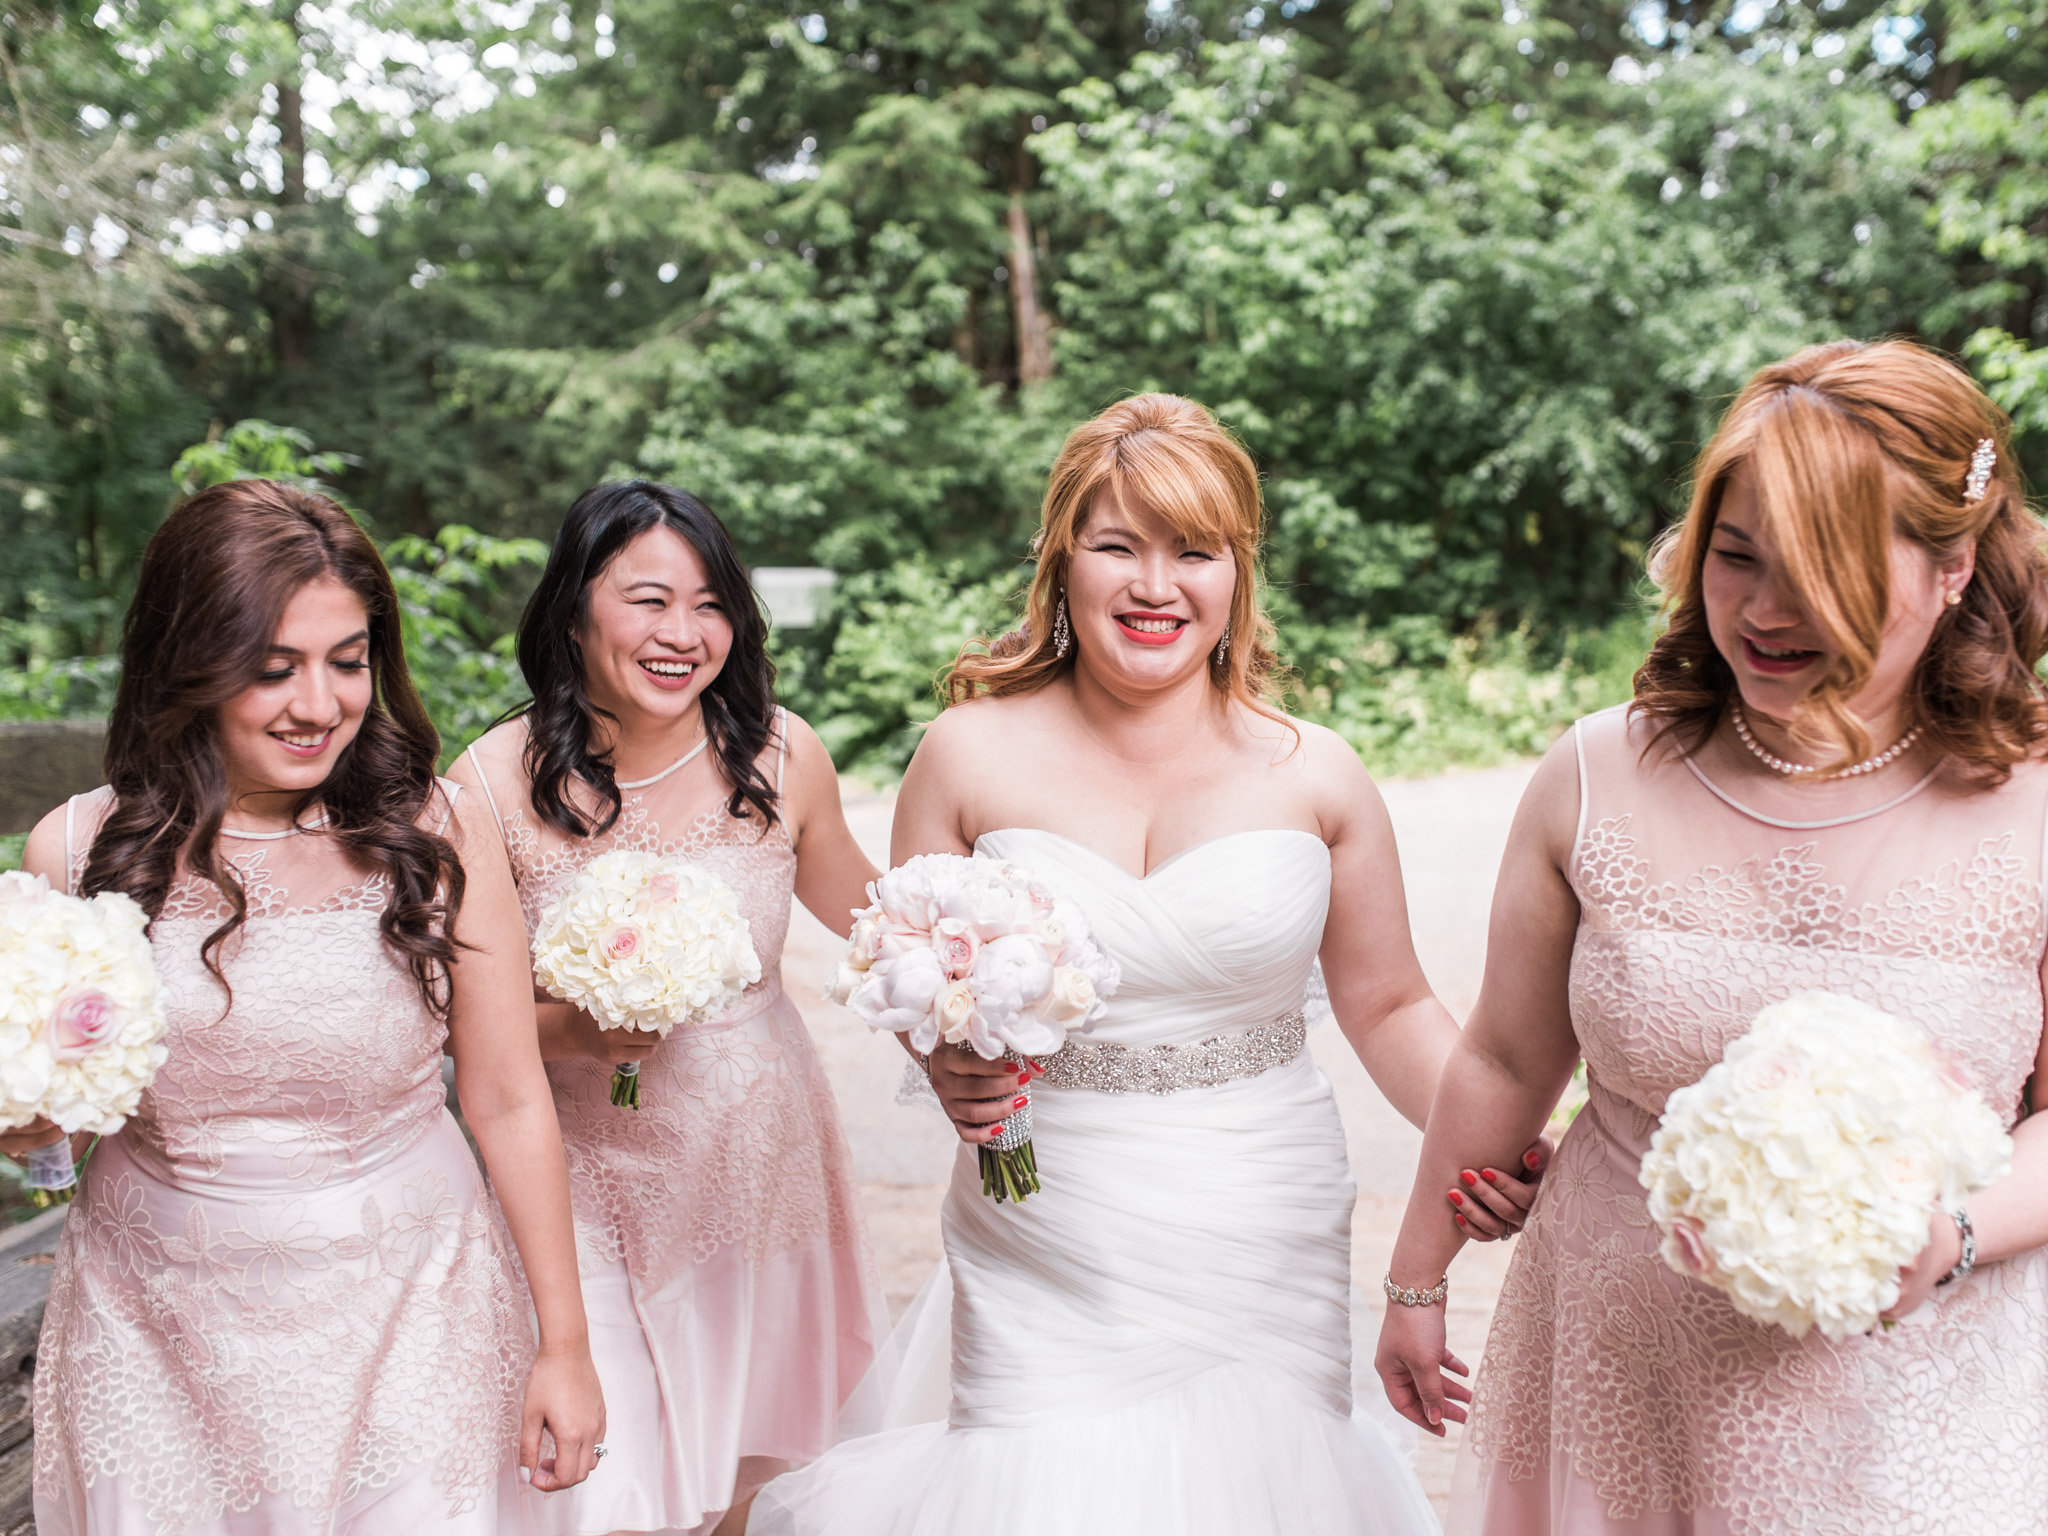 photograph of a bride and three adult bridesmaids in a woodland setting